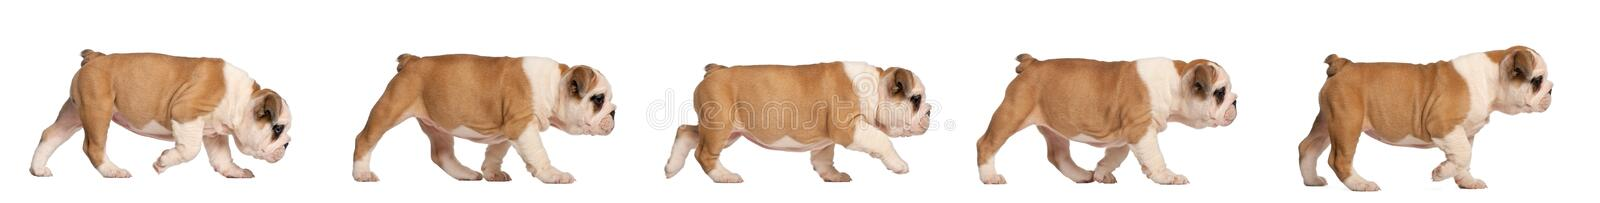 English Bulldog puppy tracking, 2 months old stock photos